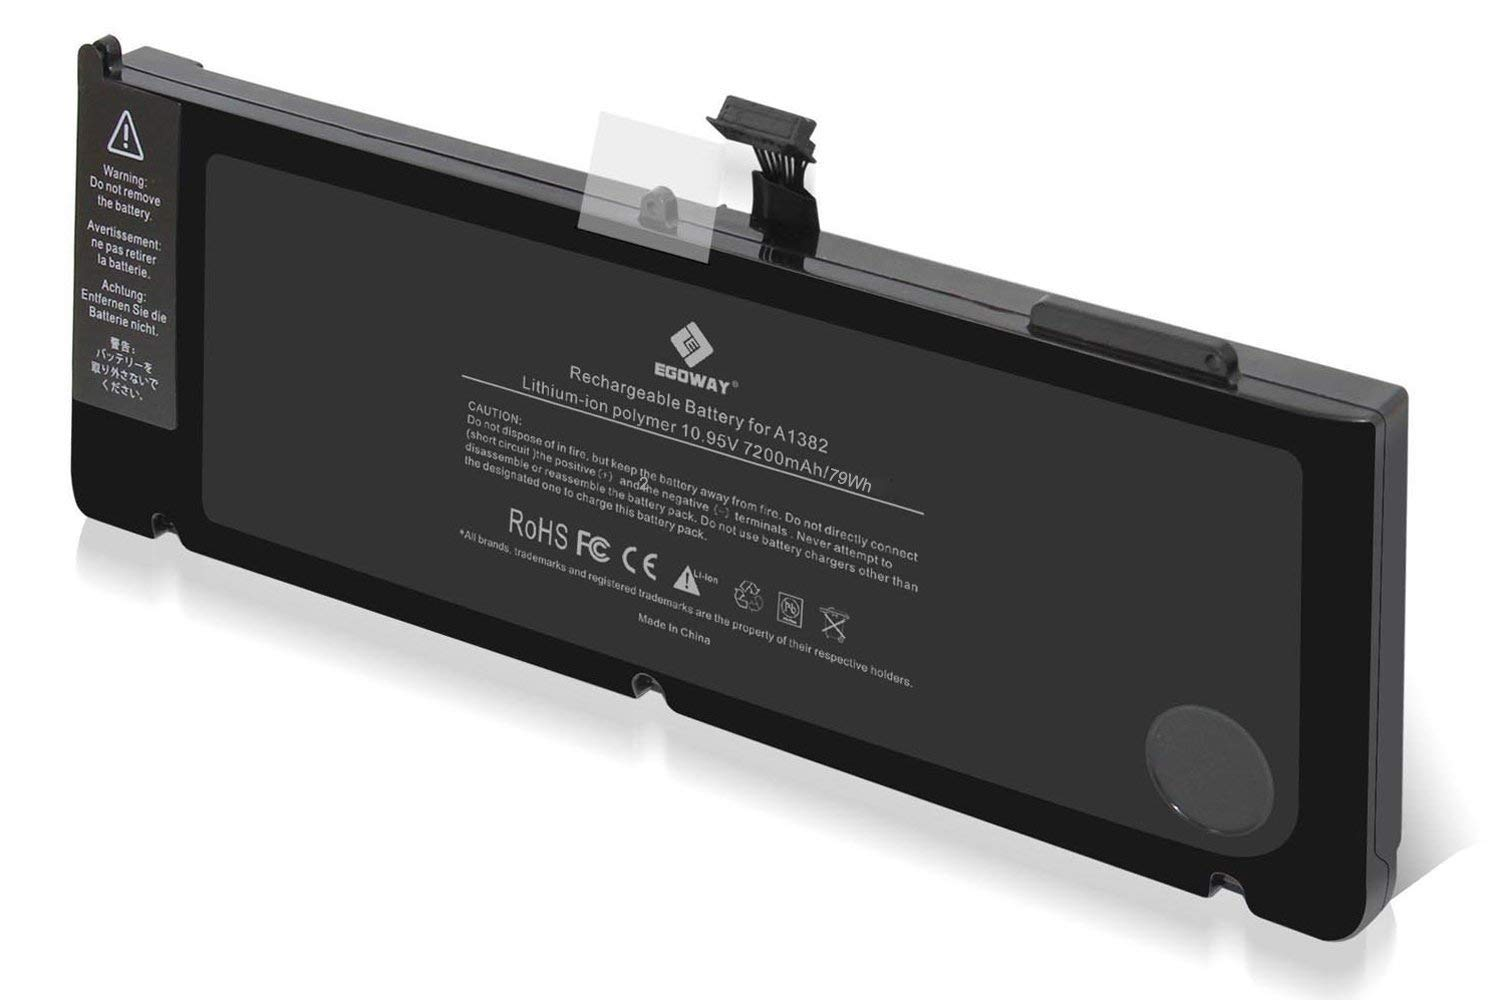 E EGOWAY Replacement Laptop Battery Compatible for MacBook Pro 15 inch A1382 A1286 Early and Late 2011, Mid 2012 by E EGOWAY (Image #2)